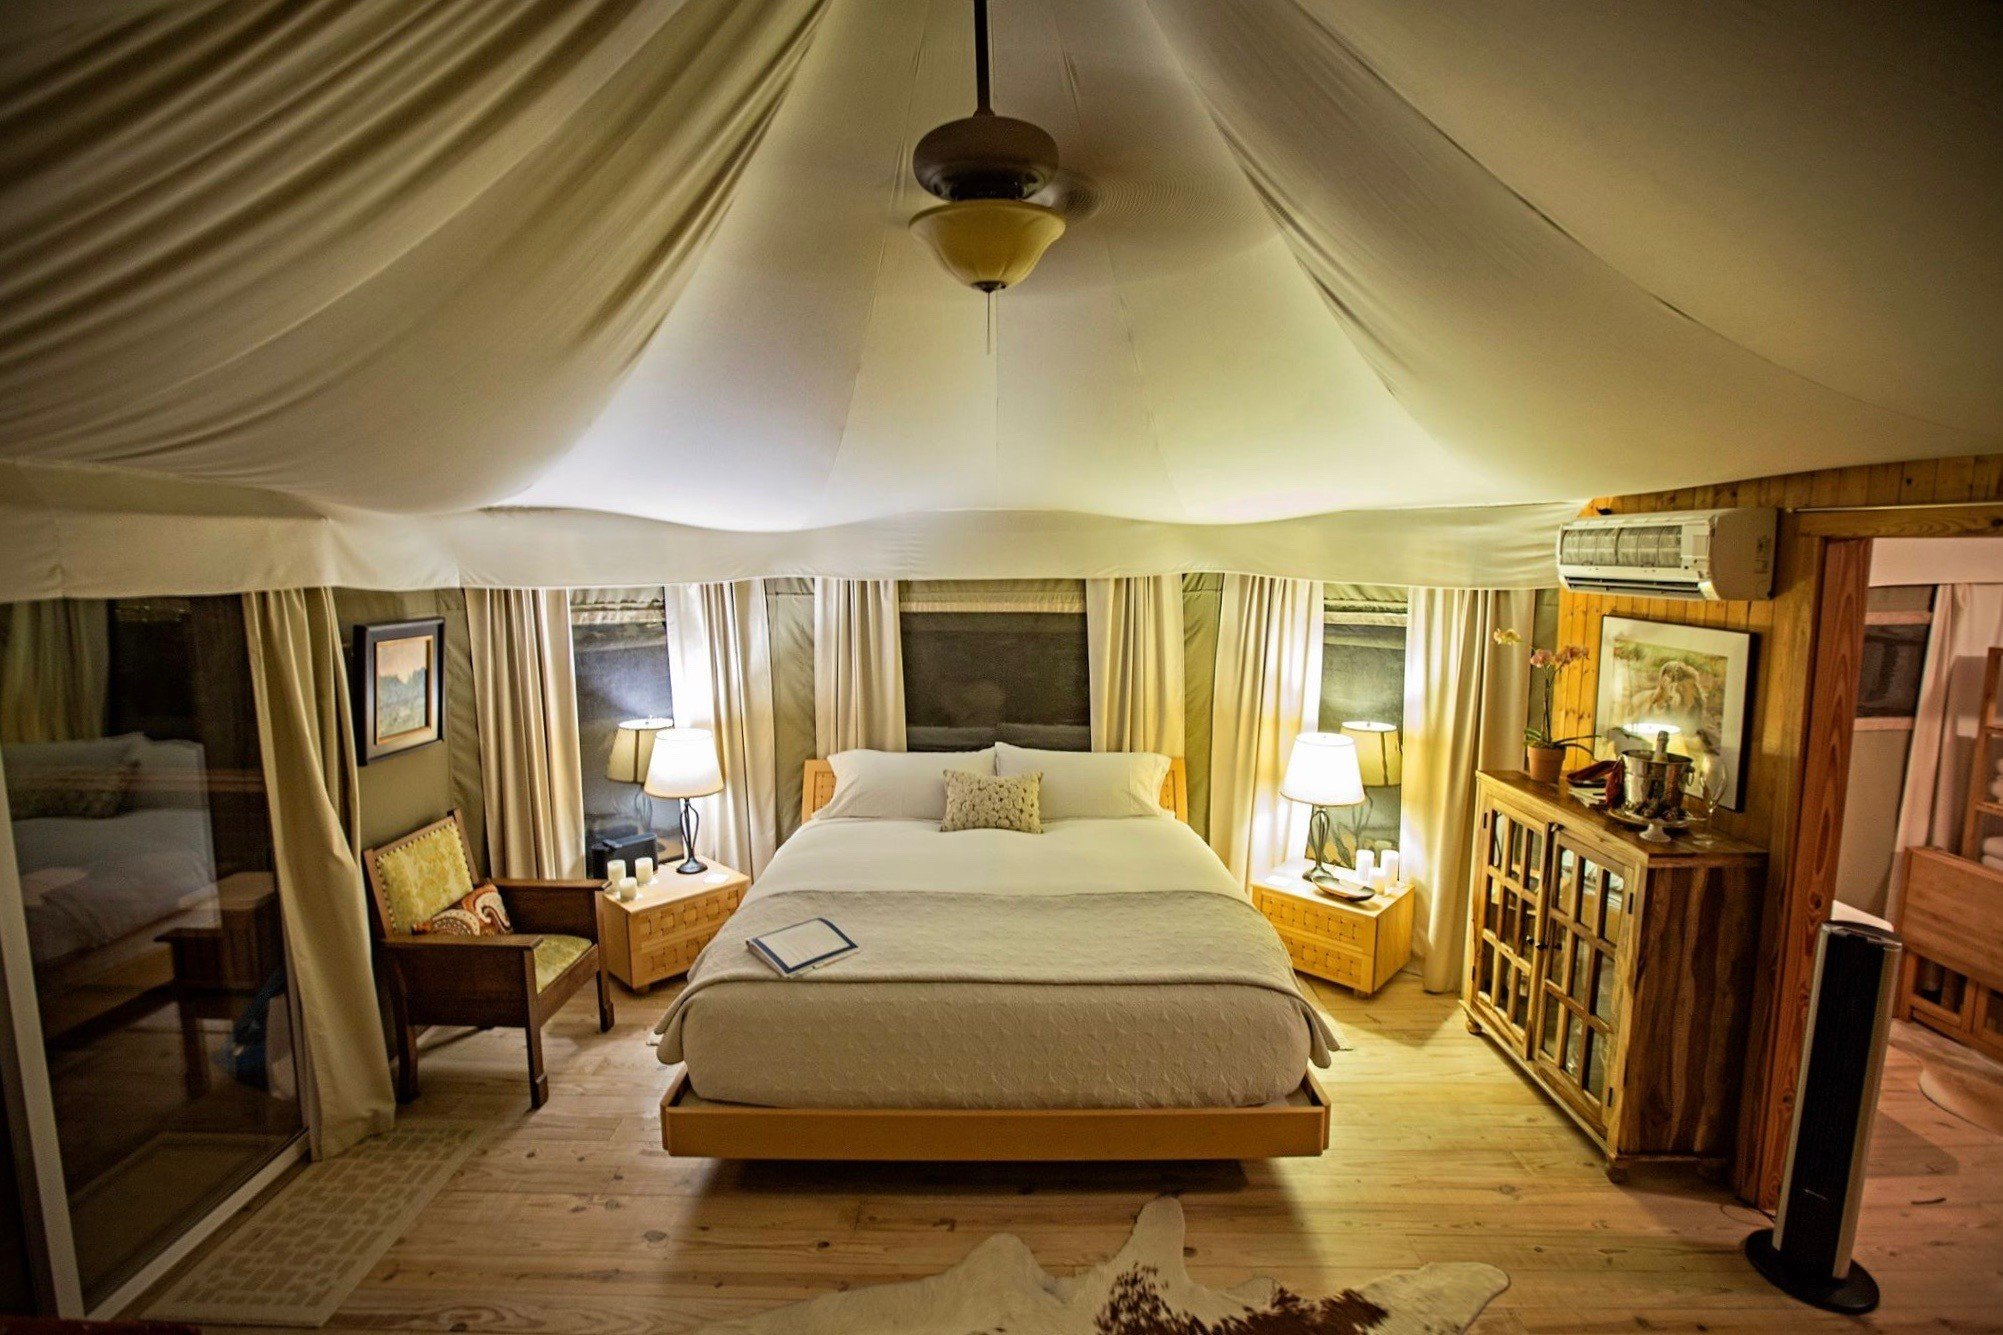 Glamping Outdoors + Adventure Trip Ideas indoor floor ceiling room wall Bedroom property bed estate Suite cottage home real estate interior design Villa Resort mansion living room farmhouse furniture